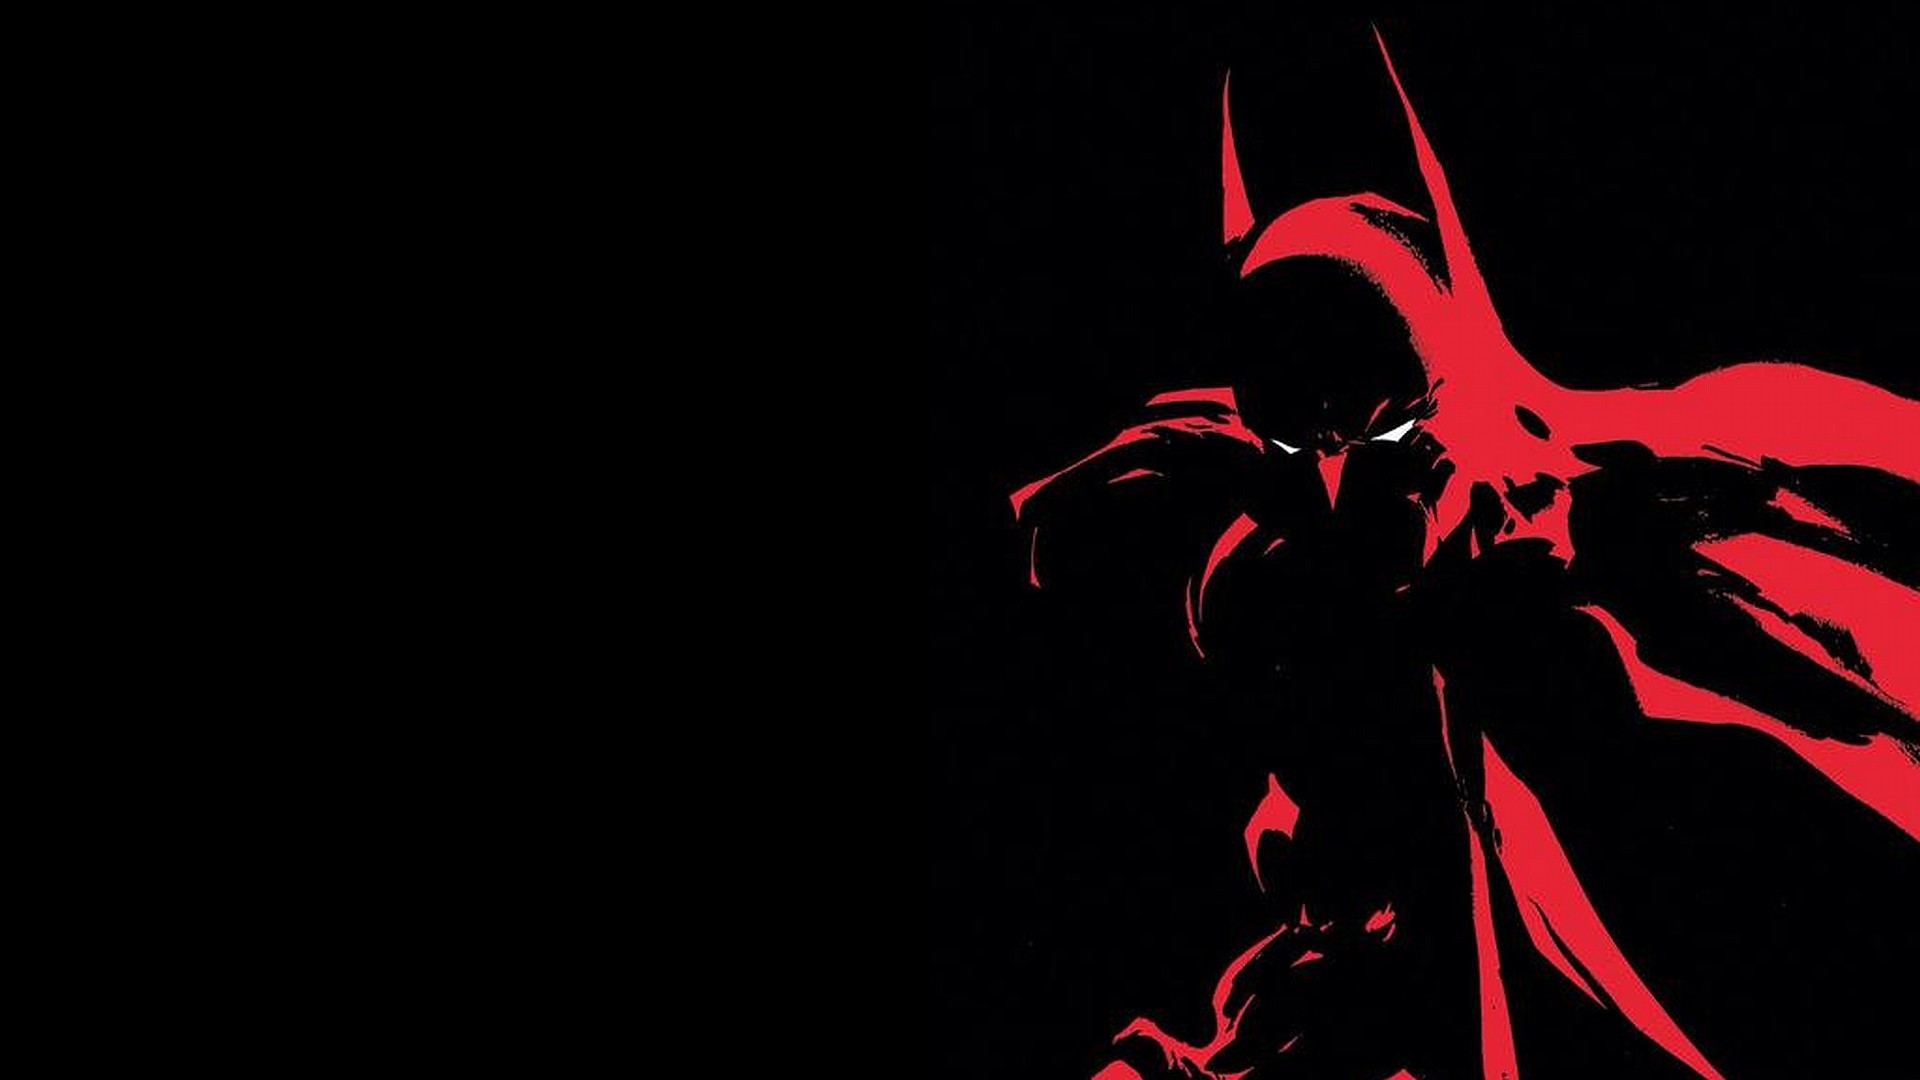 1920x1080 undefined Batman Comic Wallpapers (49 Wallpapers) | Adorable Wallpapers